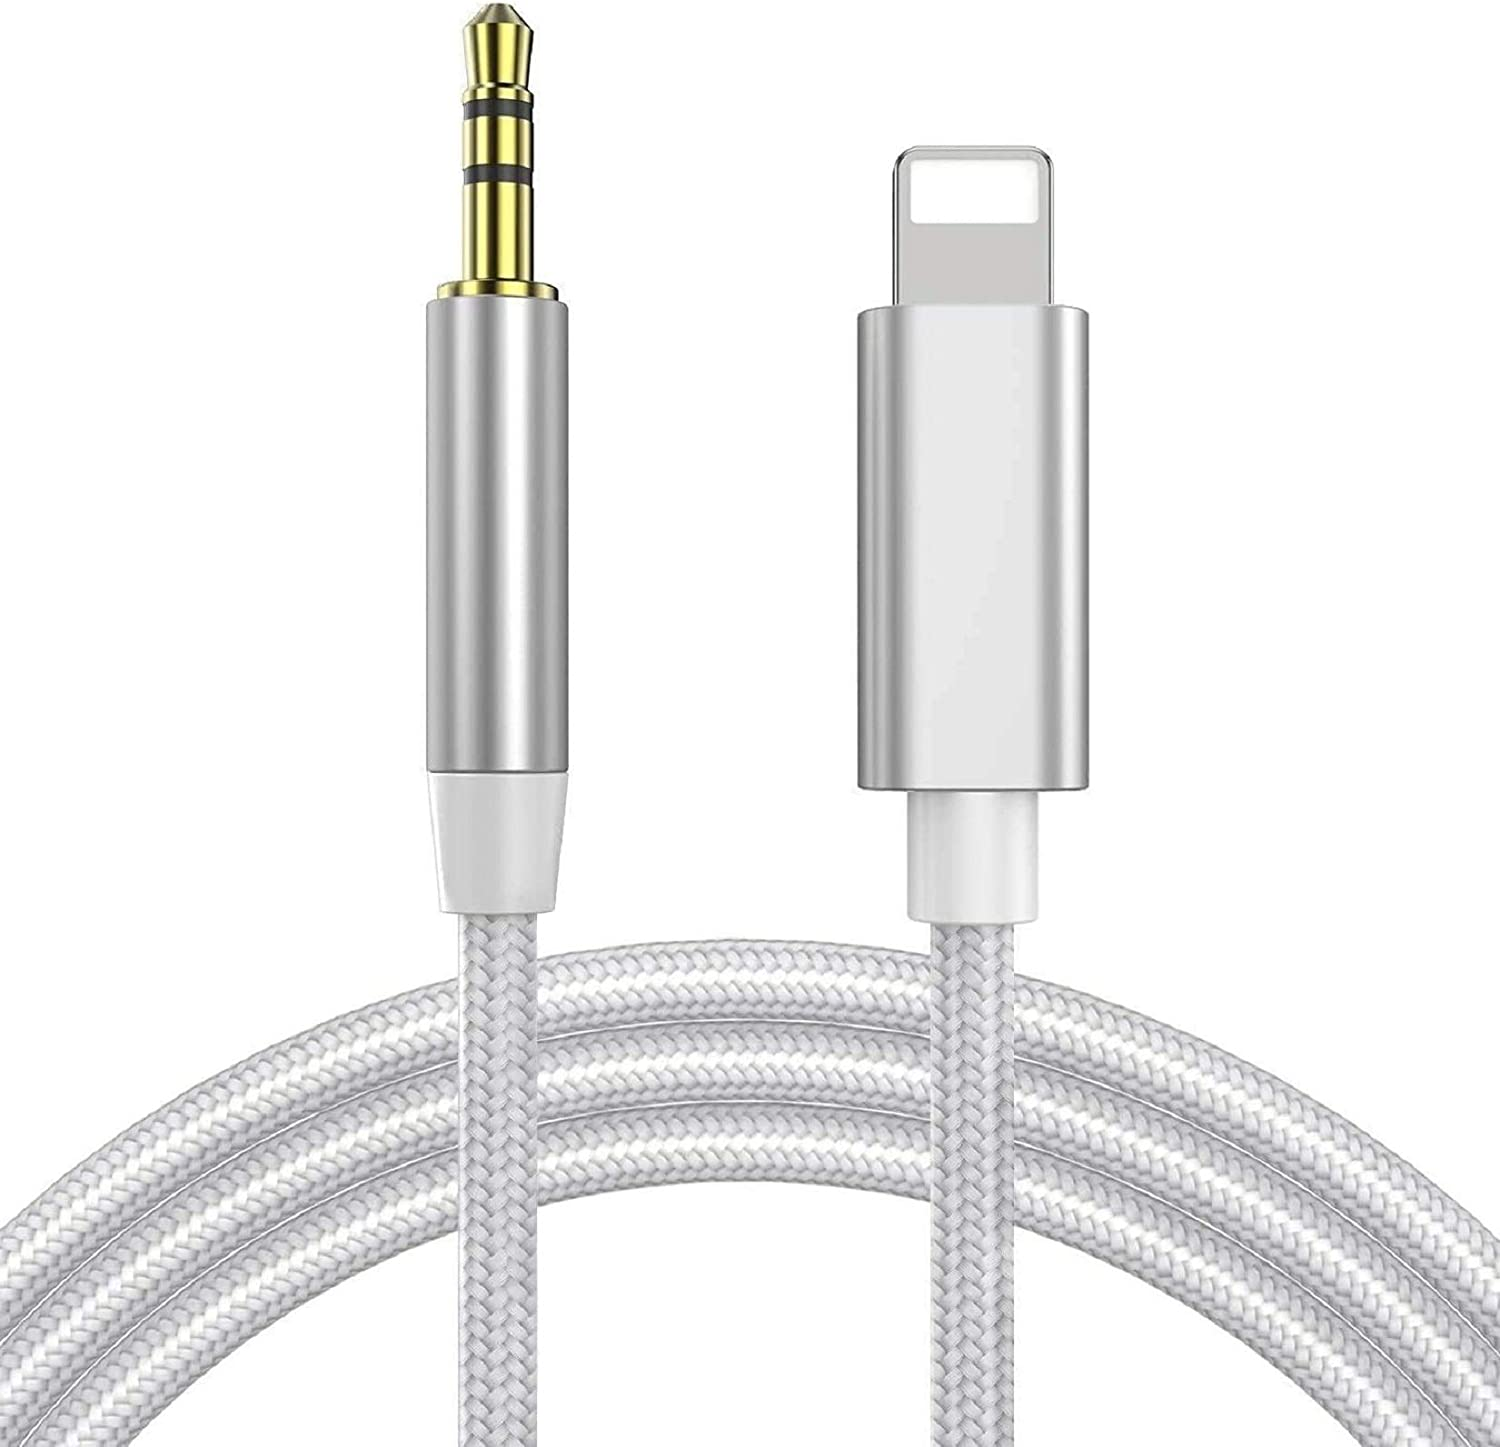 iPhone Aux Cord for Car, [Apple MFi Certified] Lightning to 3.5 mm Jack Nylon Braided Audio Stereo Cable for iPhone 11/11Pro/Xs/Xr/X/8/7 iPad to Headphones,Car/Home Stereo,Speaker - Silver/3.3FT